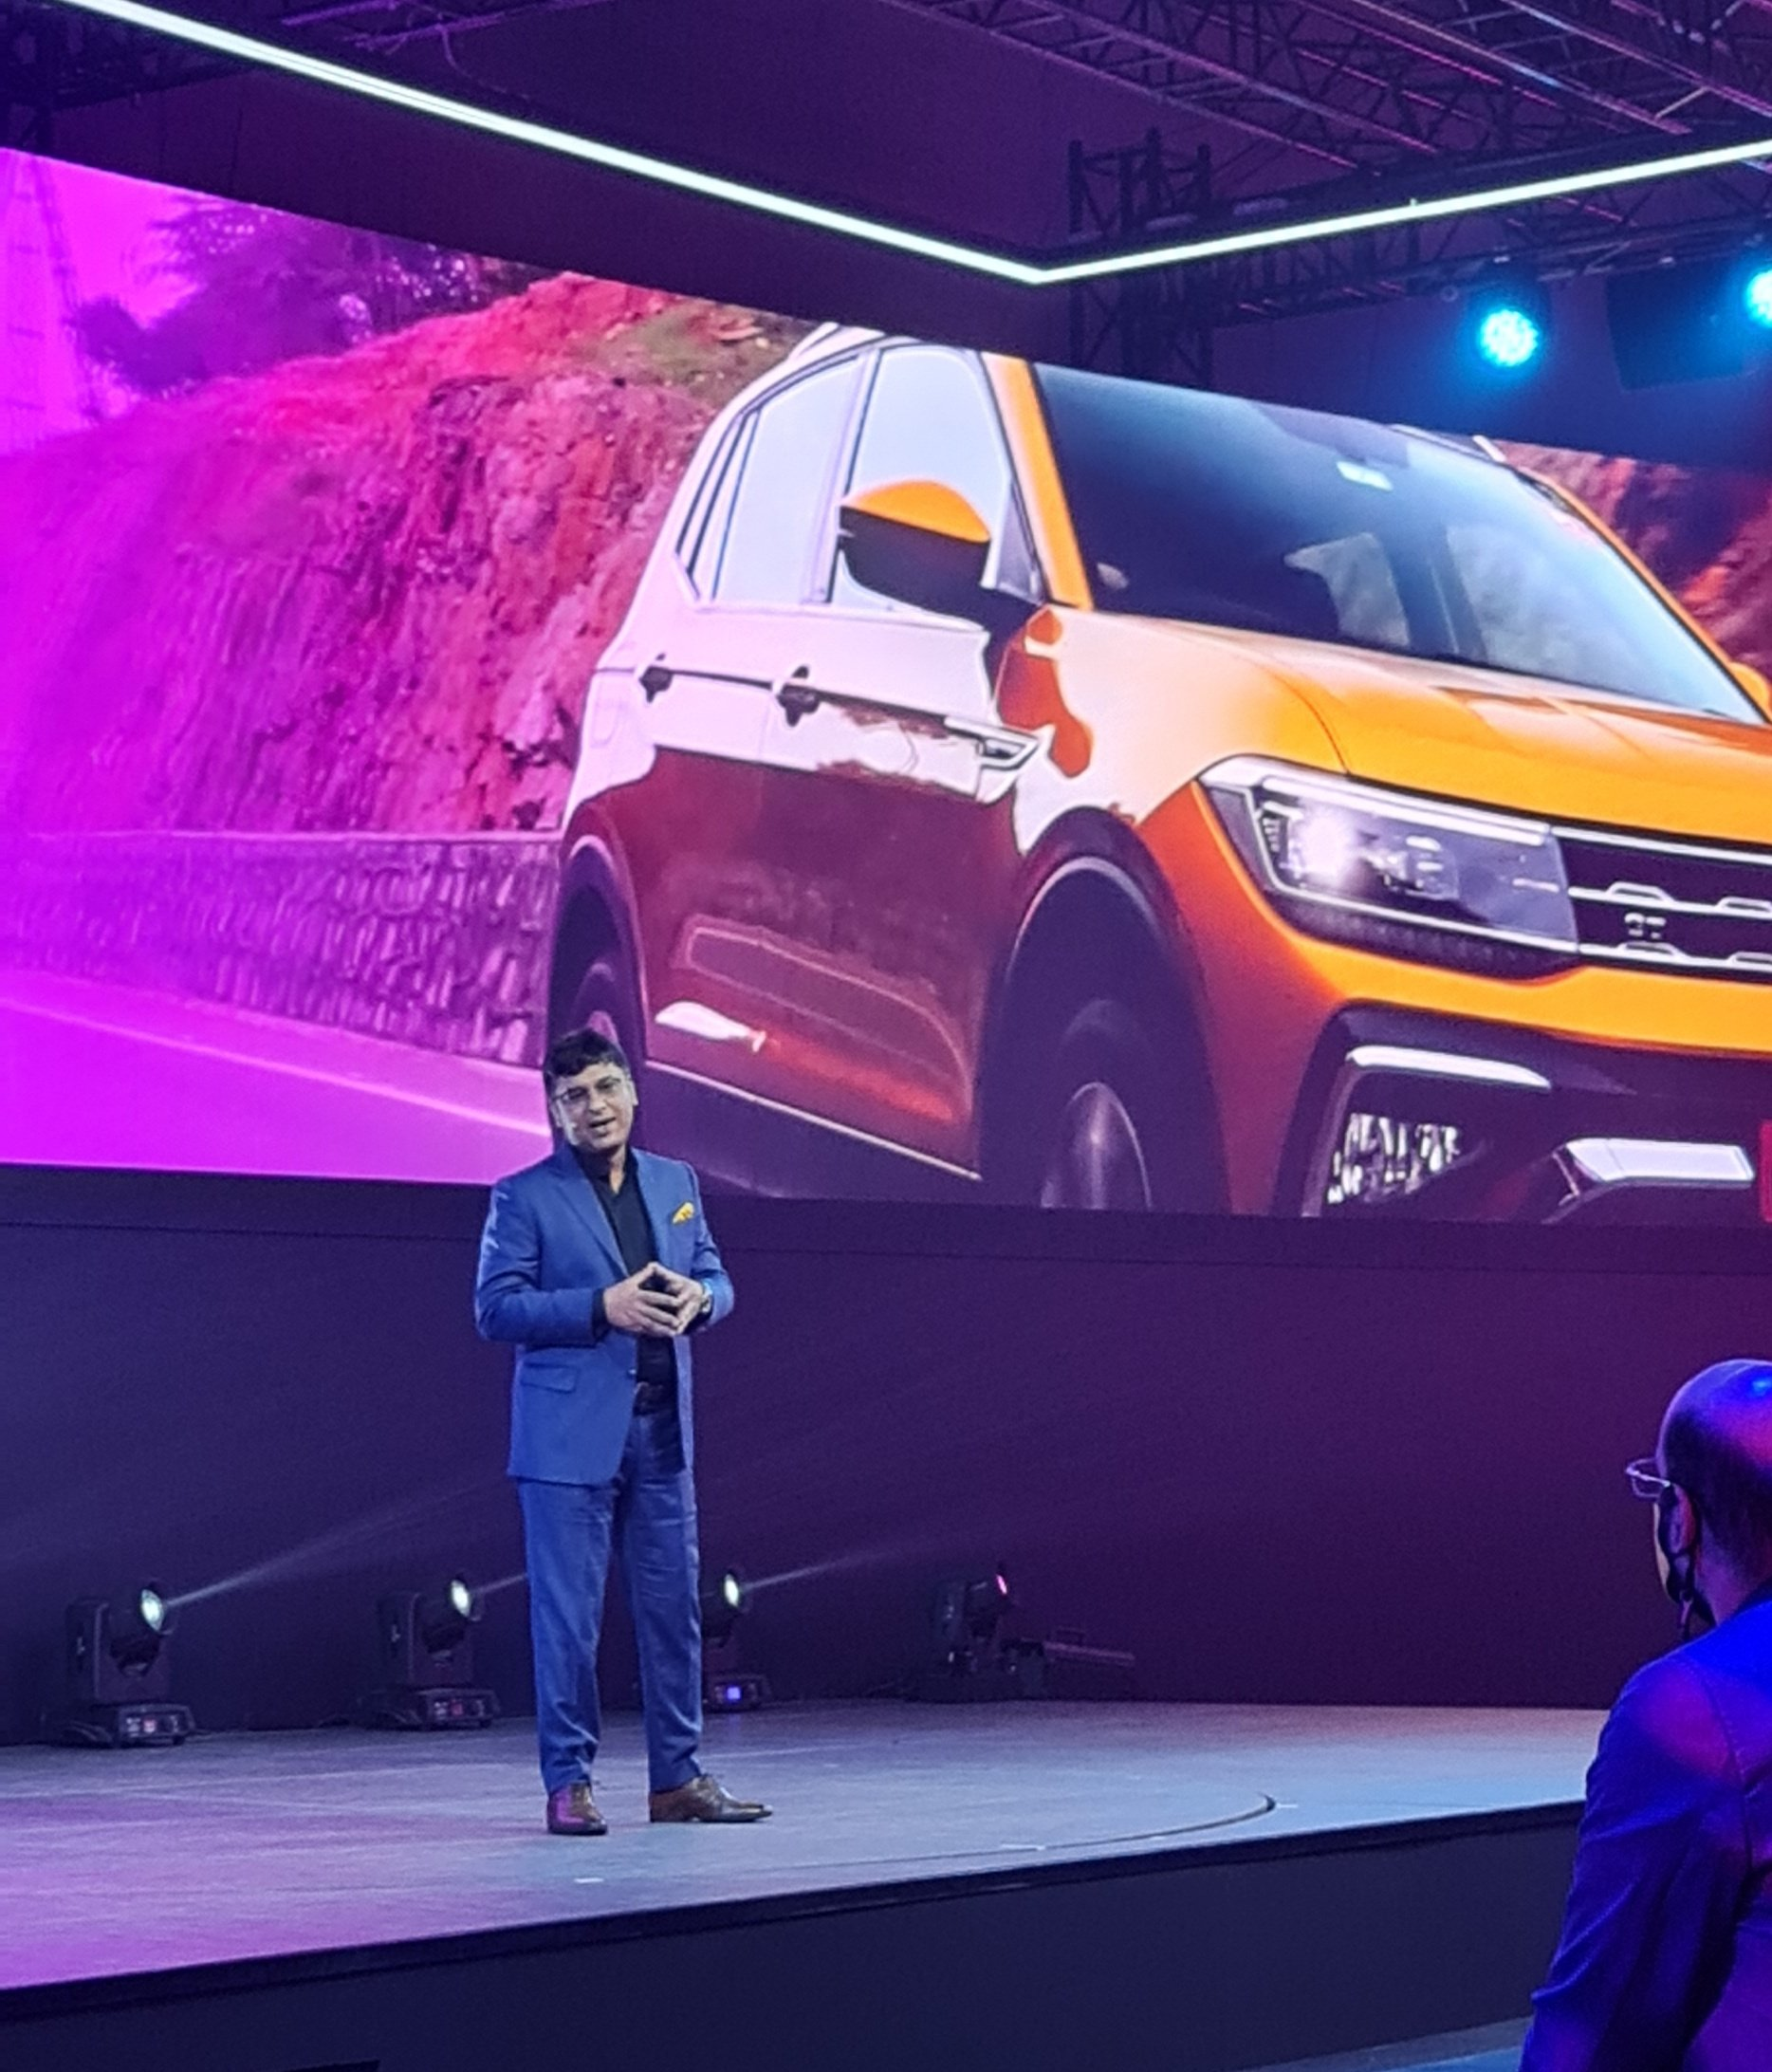 <p>Ashish Gupta, Brand Director at Volkswagen India intent on claiming 3 percent&nbsp;market share for Volkswagen in India. Taigun will be the first of a new line of products that will spearhead this challenging journey.</p>